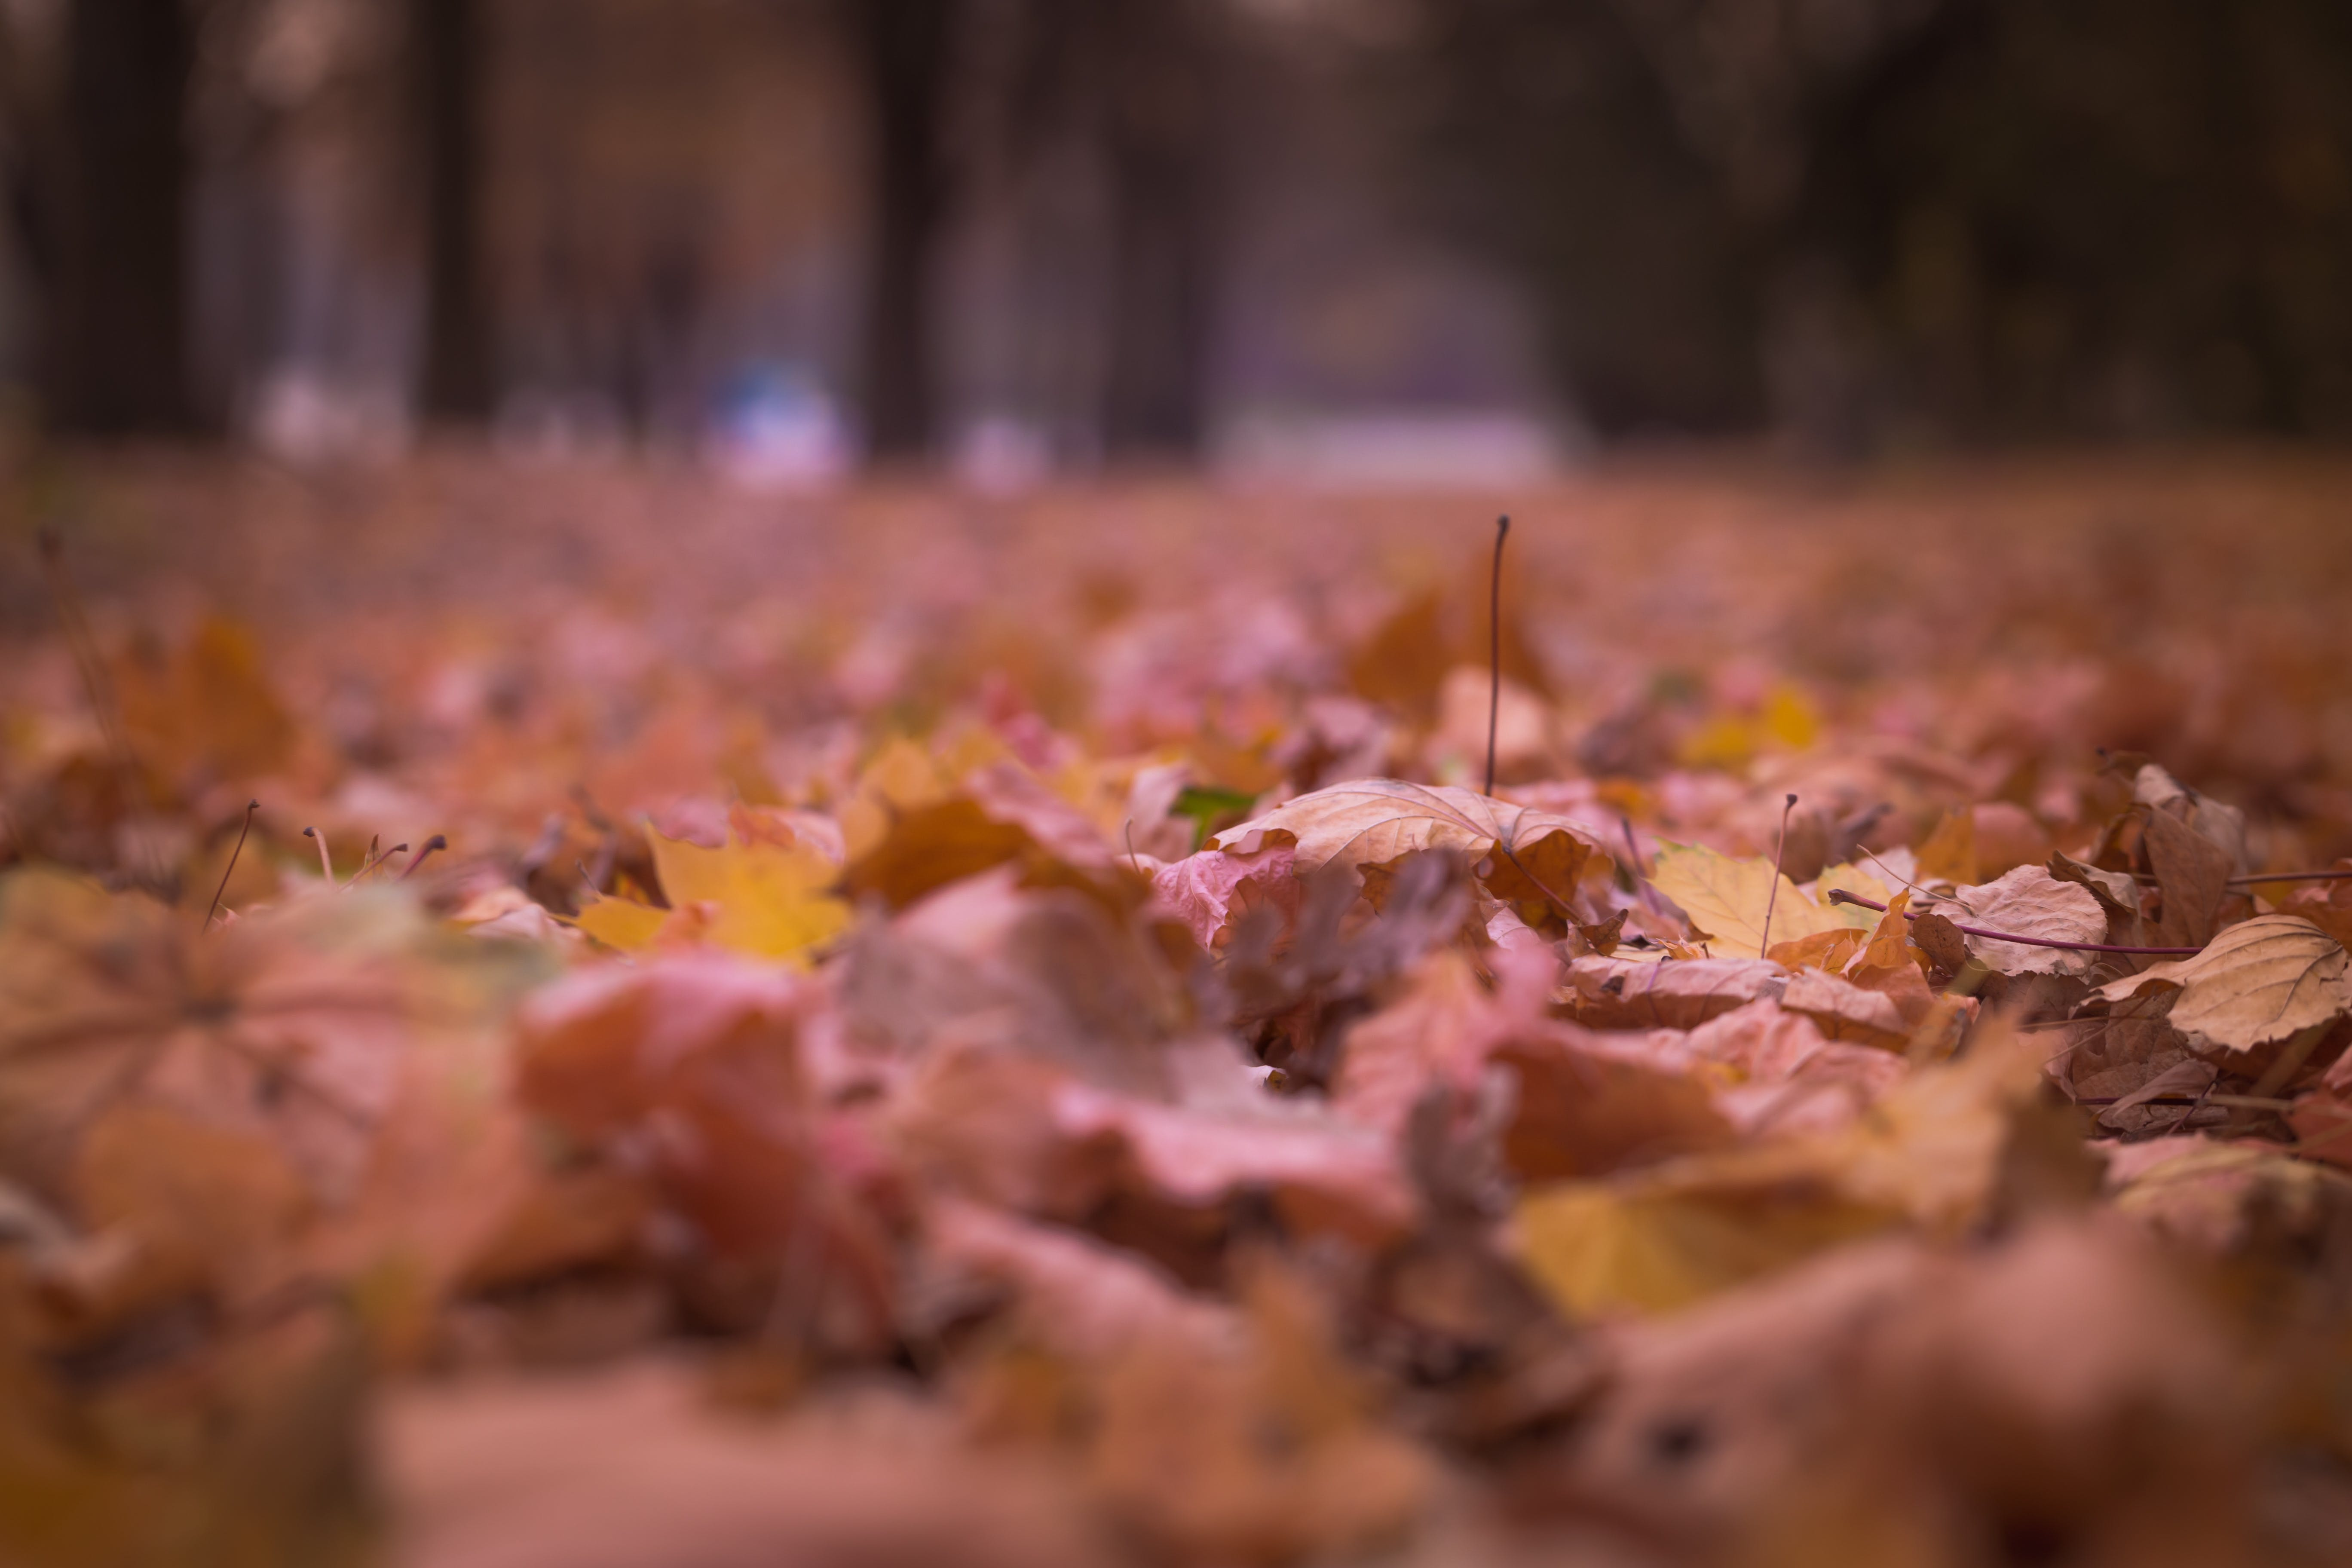 Withered Leaves on Floor Focus Photography